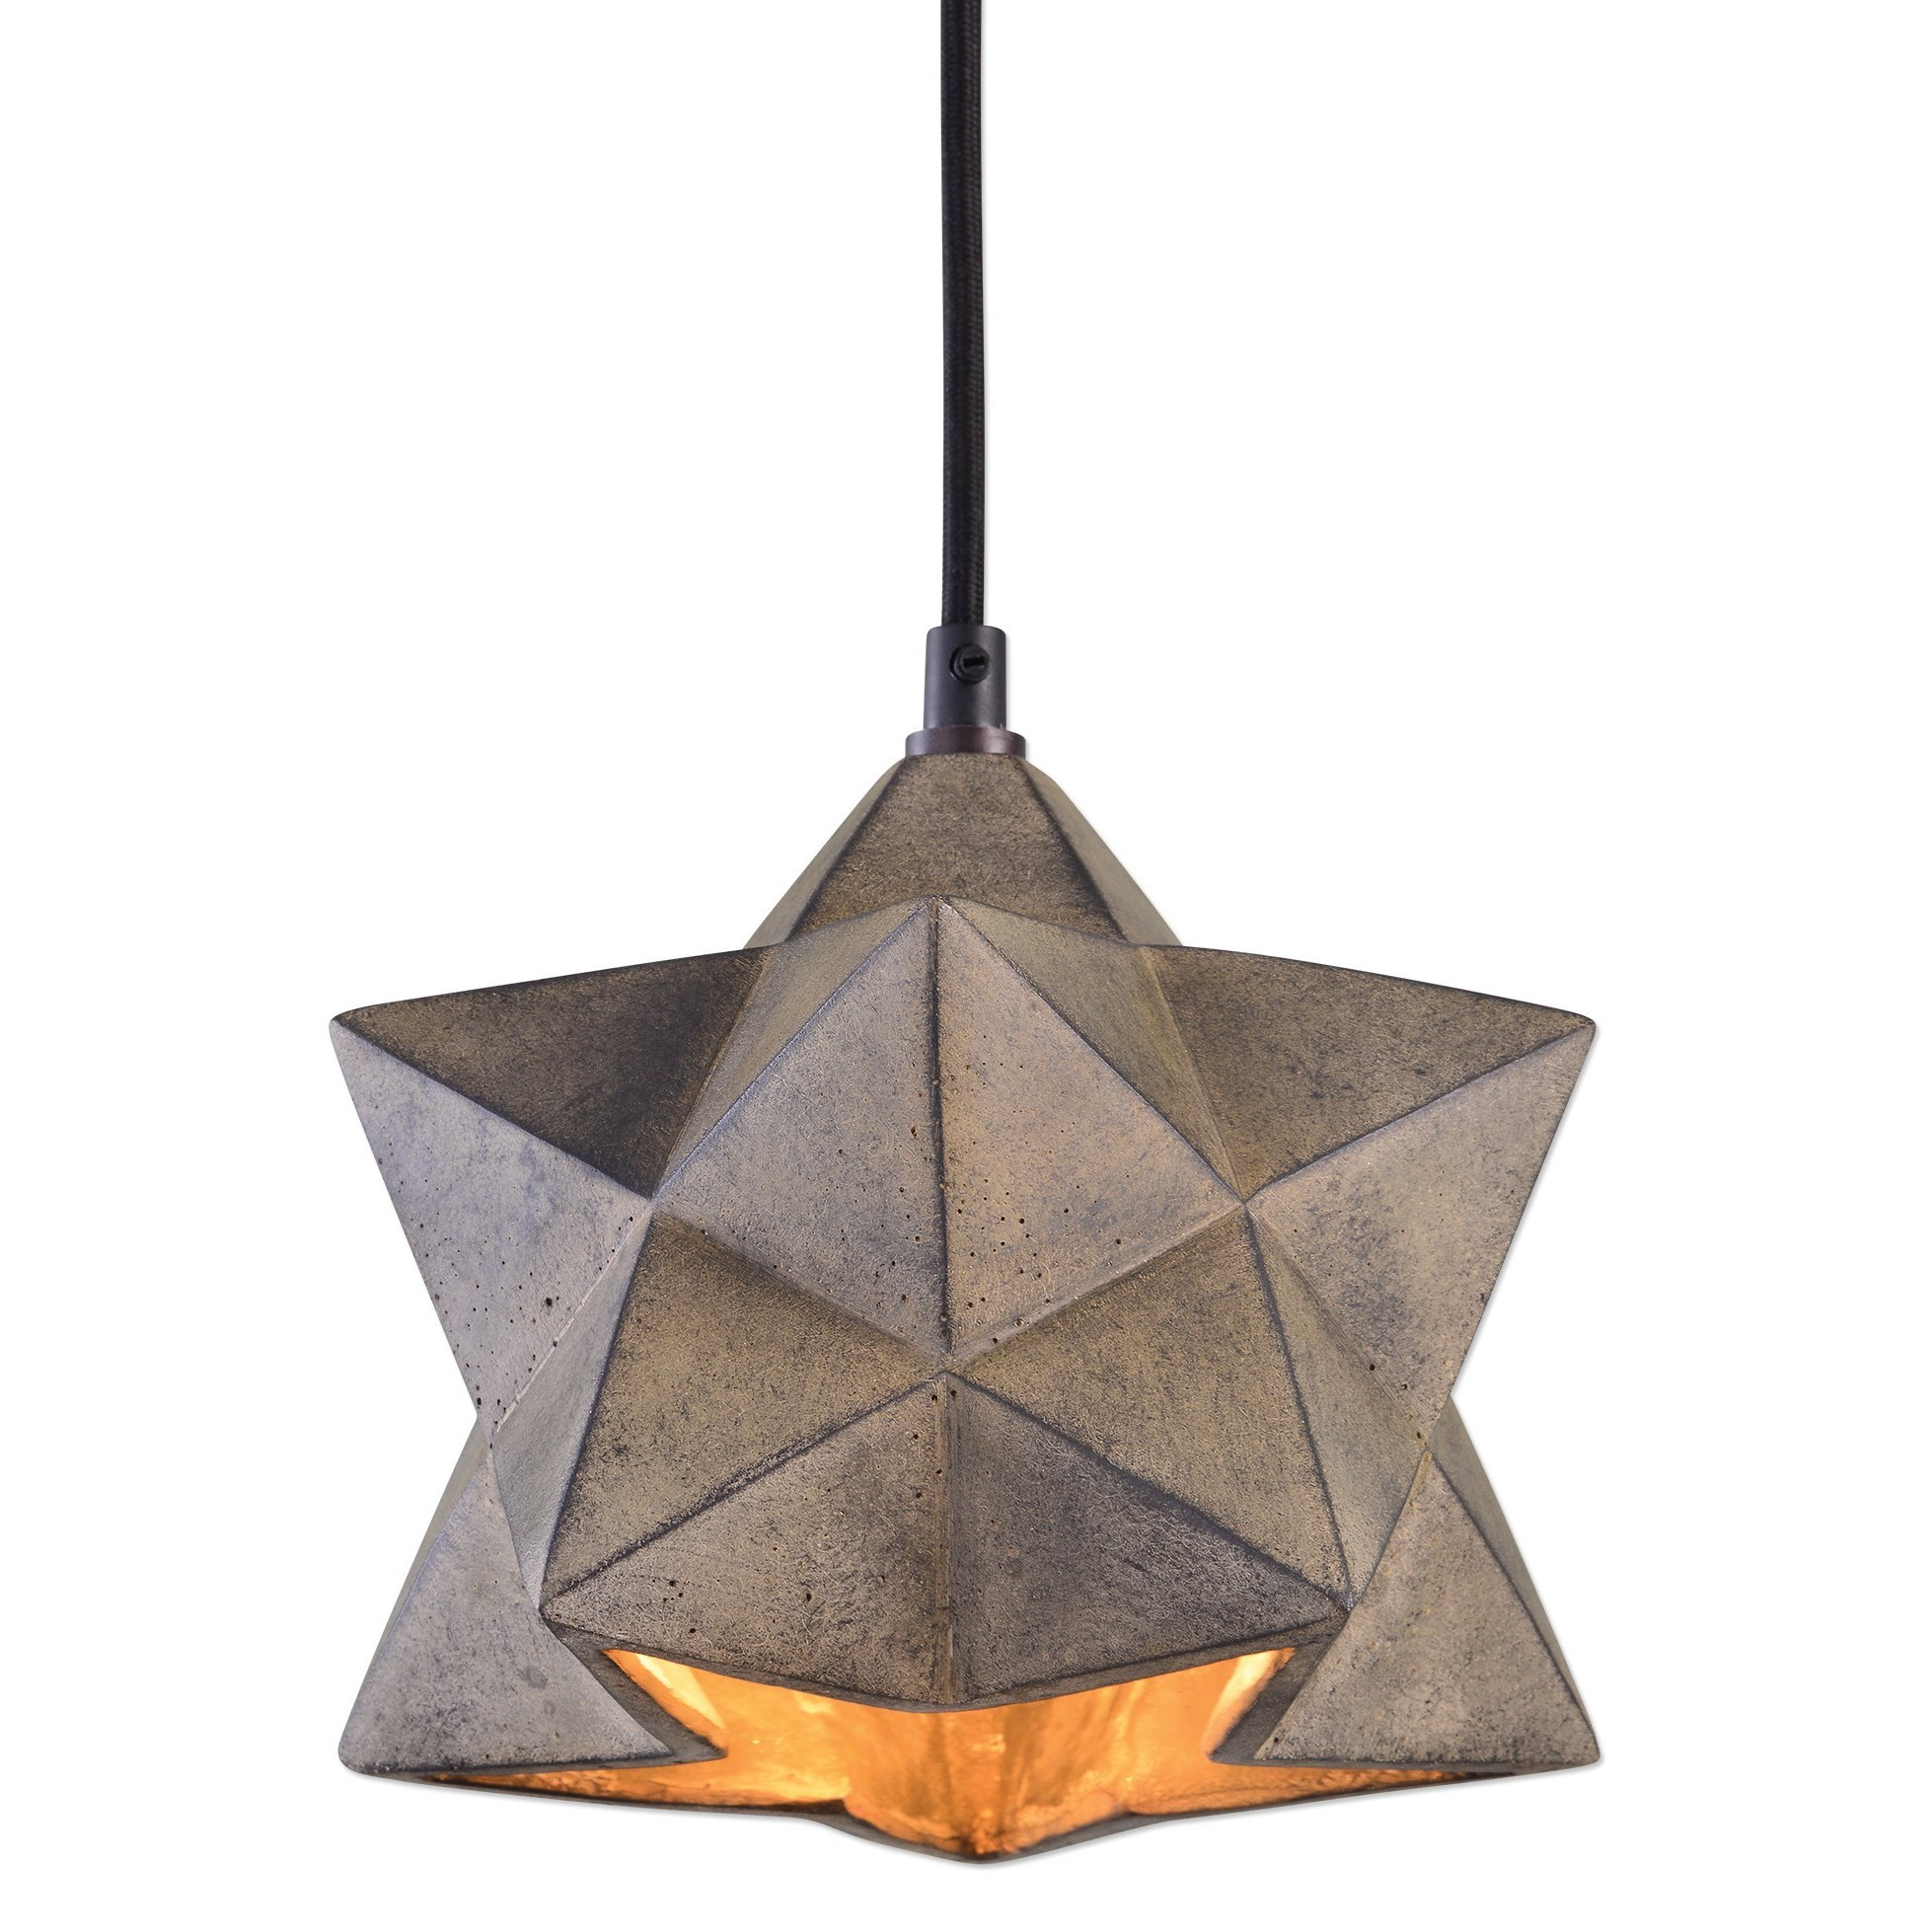 Uttermost Lighting Fixtures Rocher 1 Light Geometric Pendant - Item Number: 22094